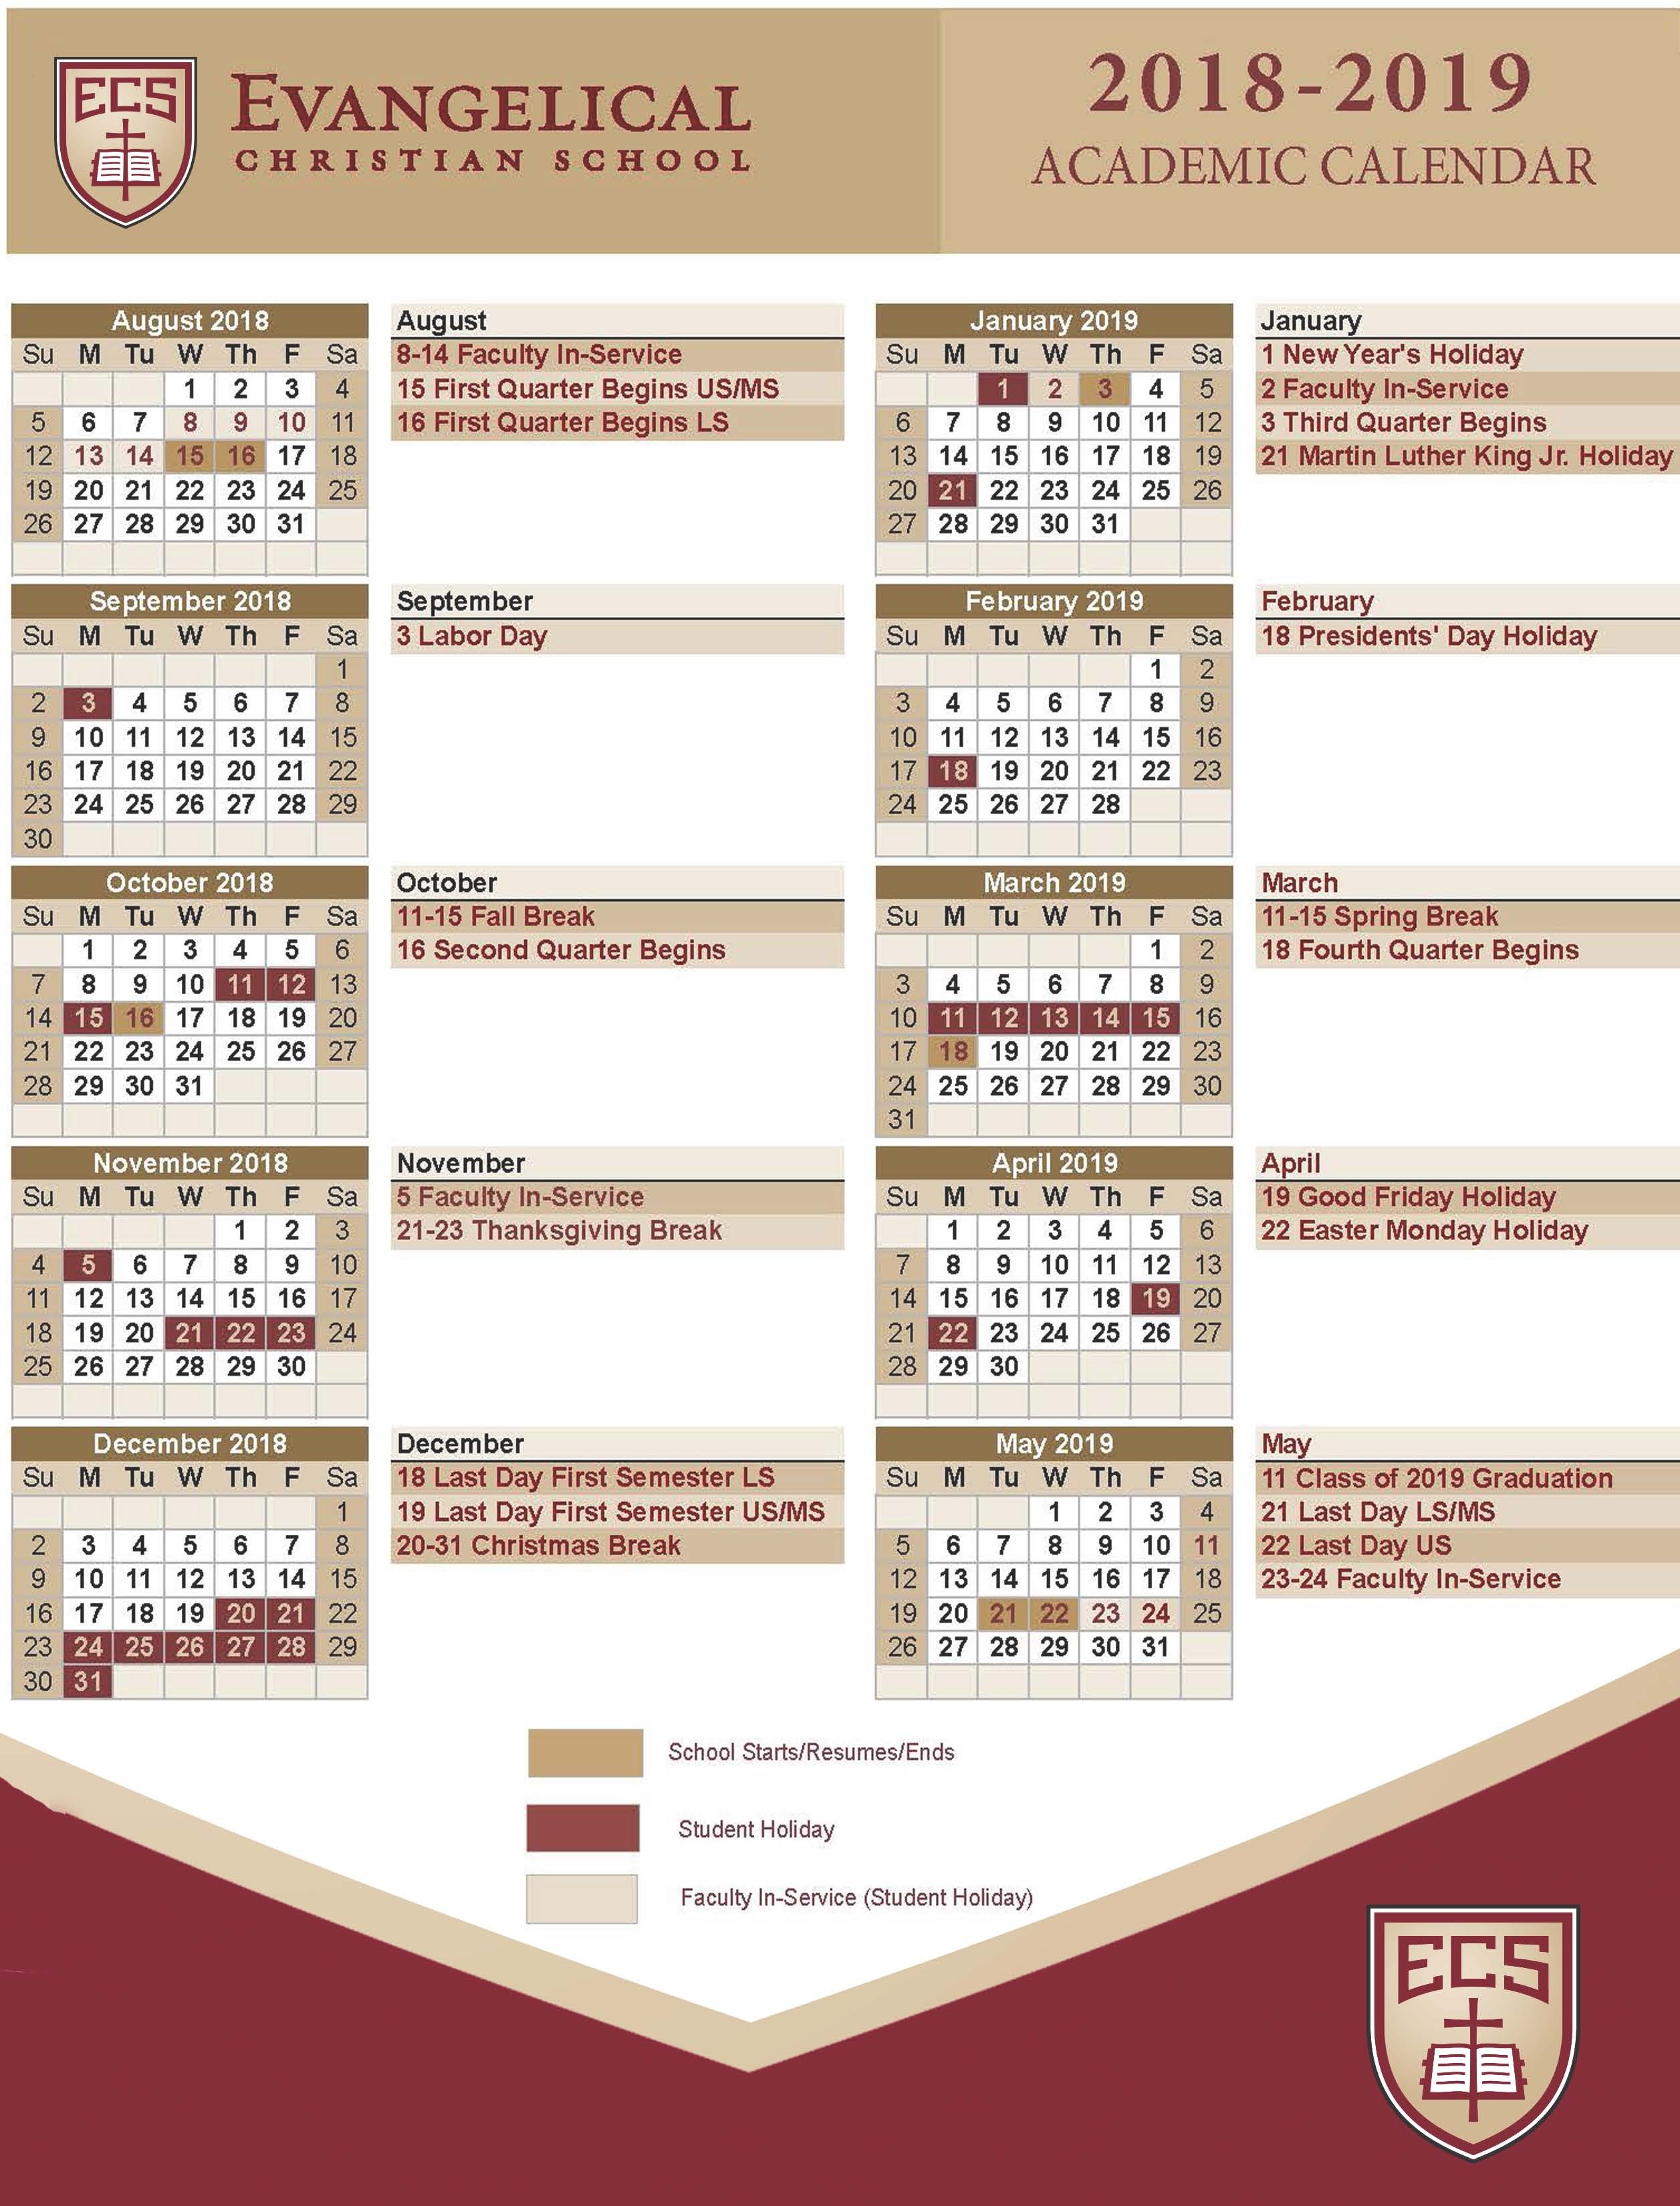 March Holiday Calendar 2019 Más Recientes Calendars Evangelical Christian School Of March Holiday Calendar 2019 Mejores Y Más Novedosos March 2019 Calendar Printable with Holidays